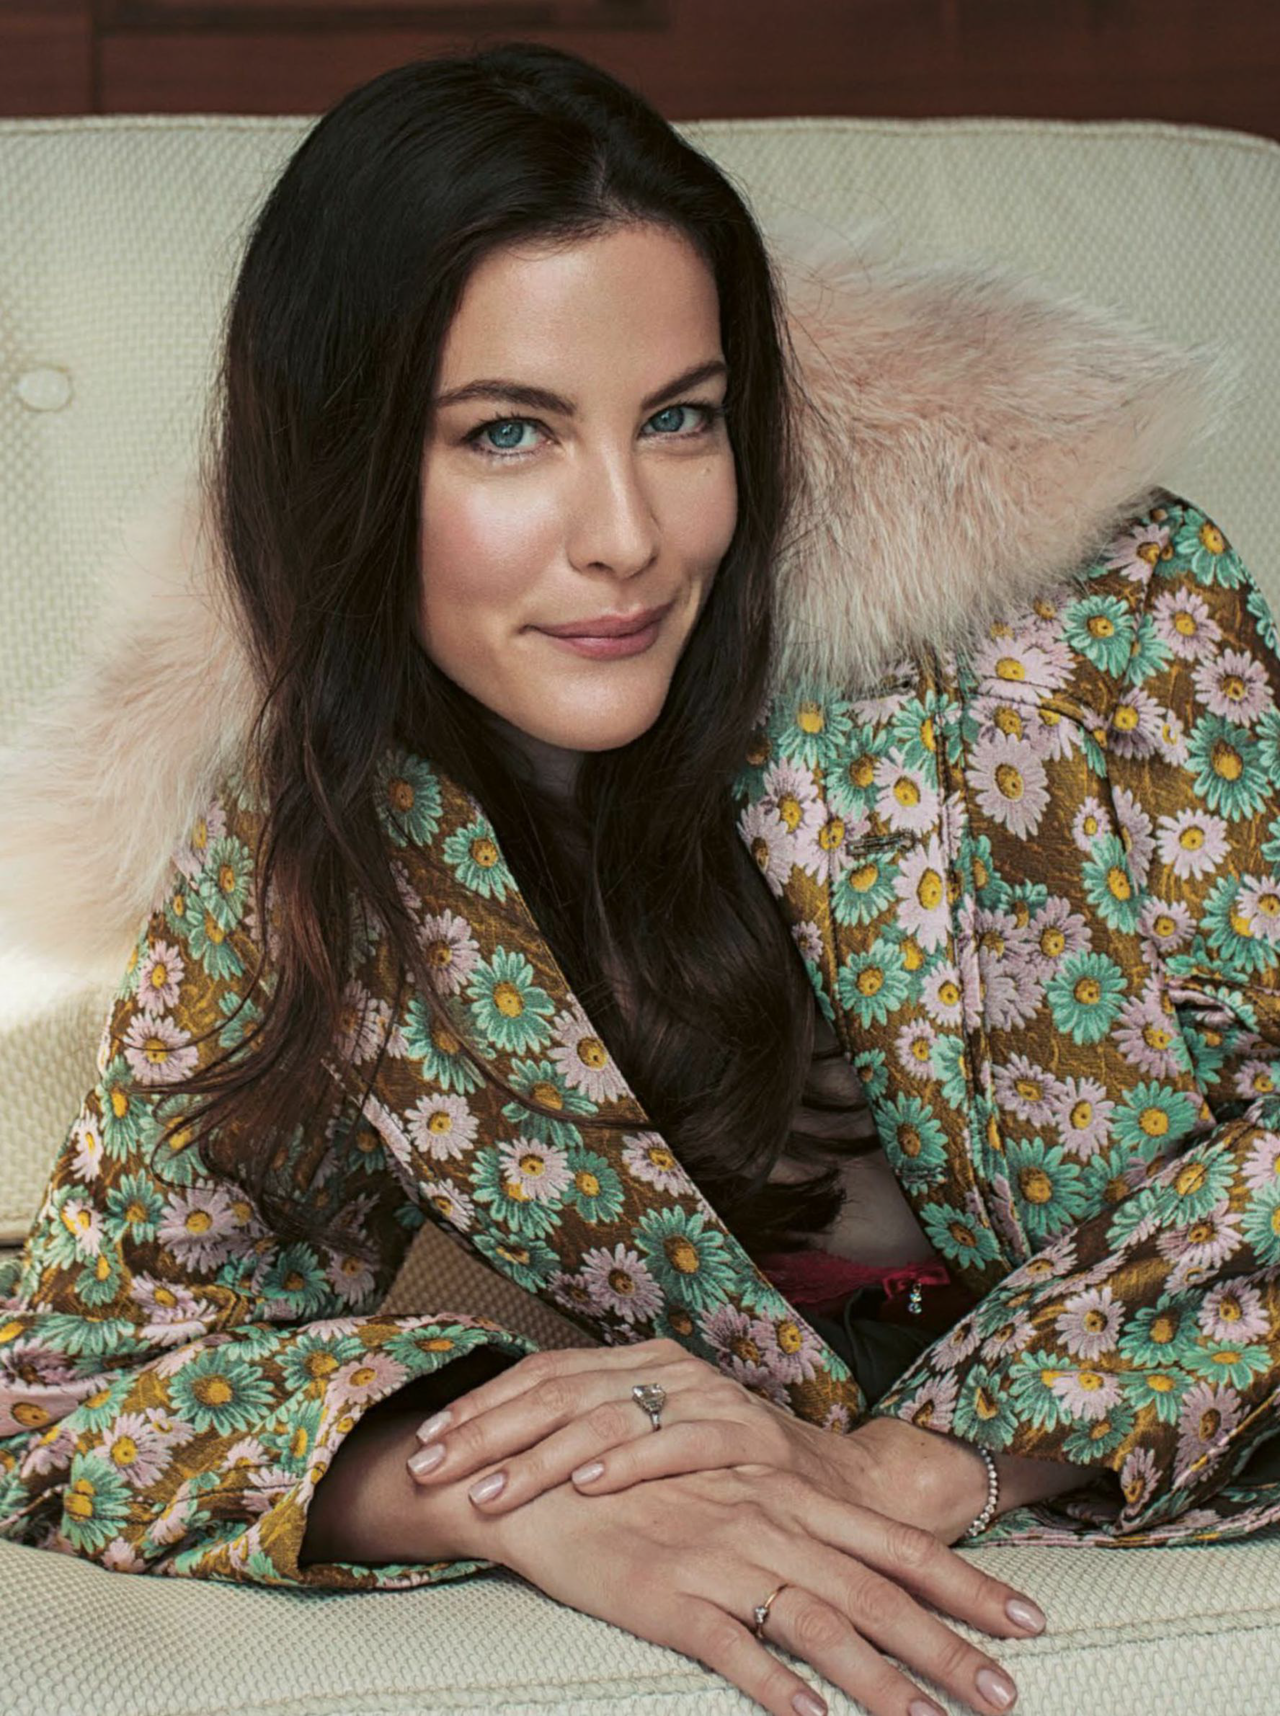 Liv Tyler turns pop star for new Givenchy perfume ad Liv Tyler turns pop star for new Givenchy perfume ad new images